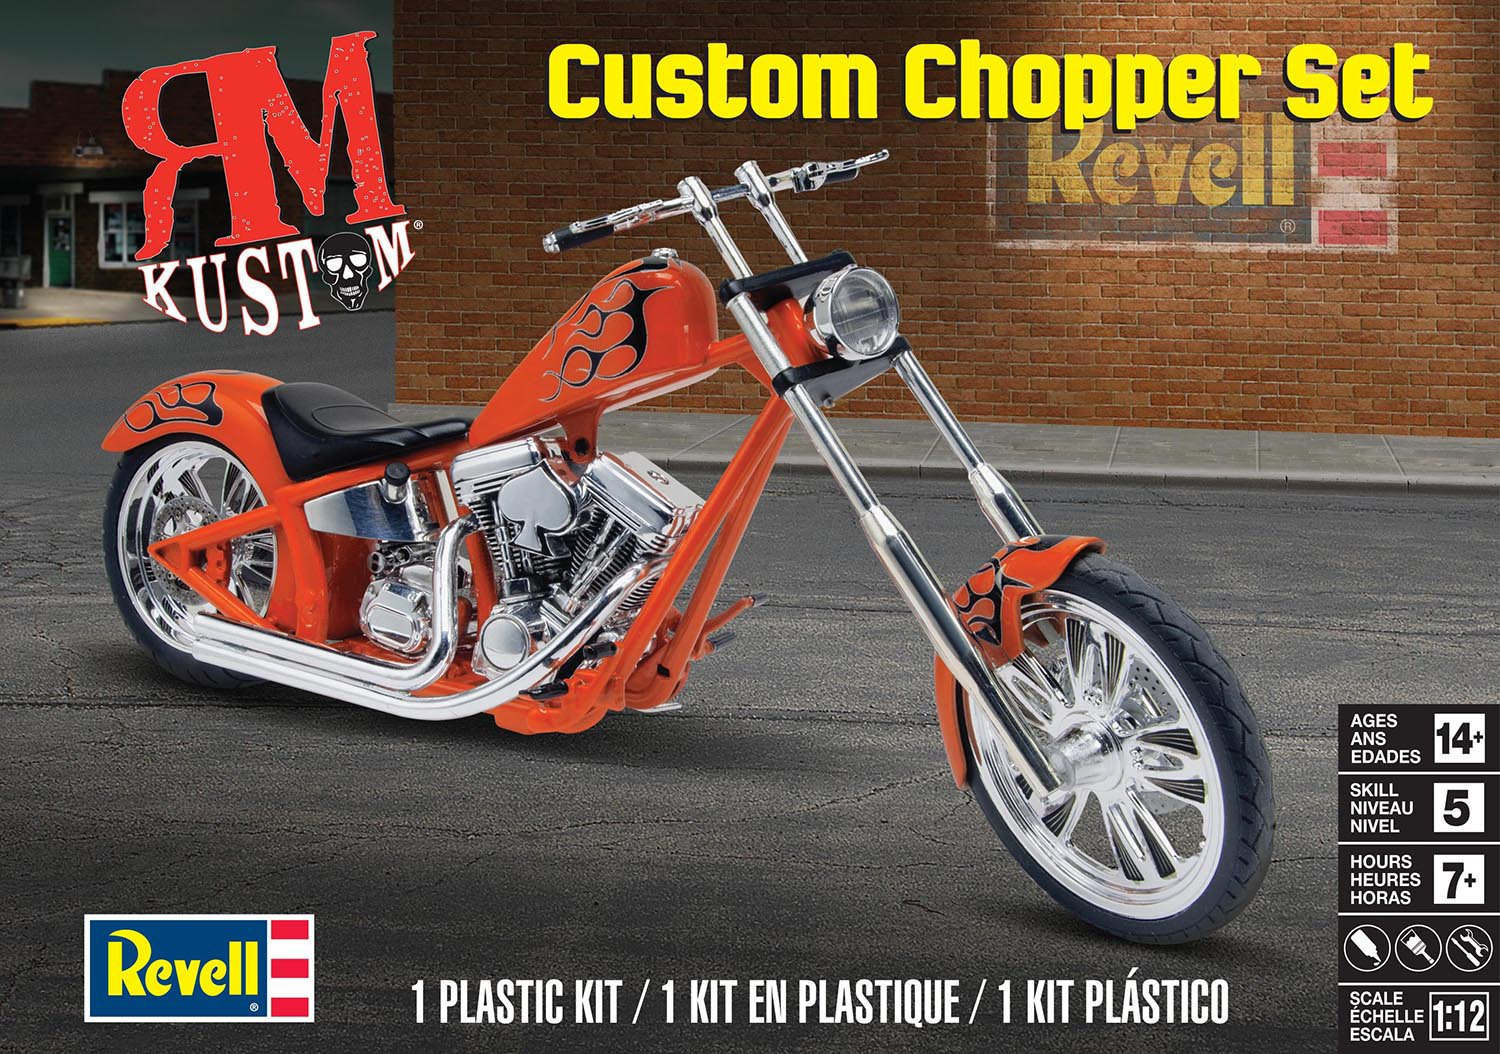 Custom Chopper Set RM Kustom Motorrad Bike 1:12 Model Kit Bausatz Revell 7324